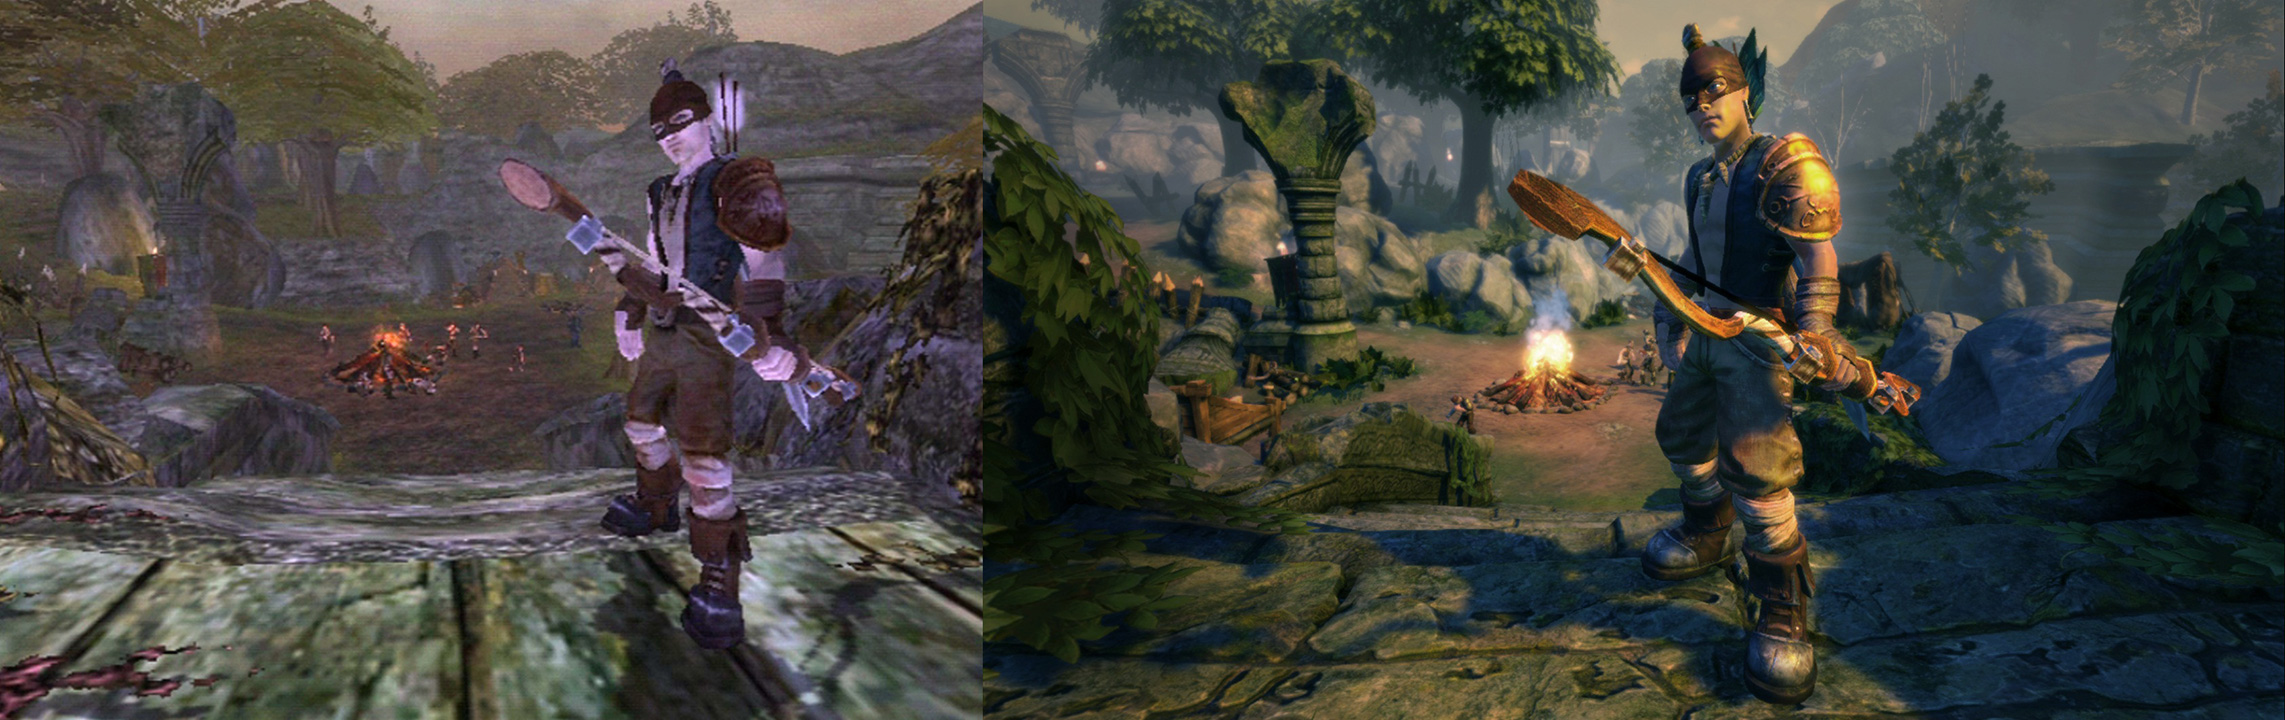 Fable-anniversary-comparison-shot_2285